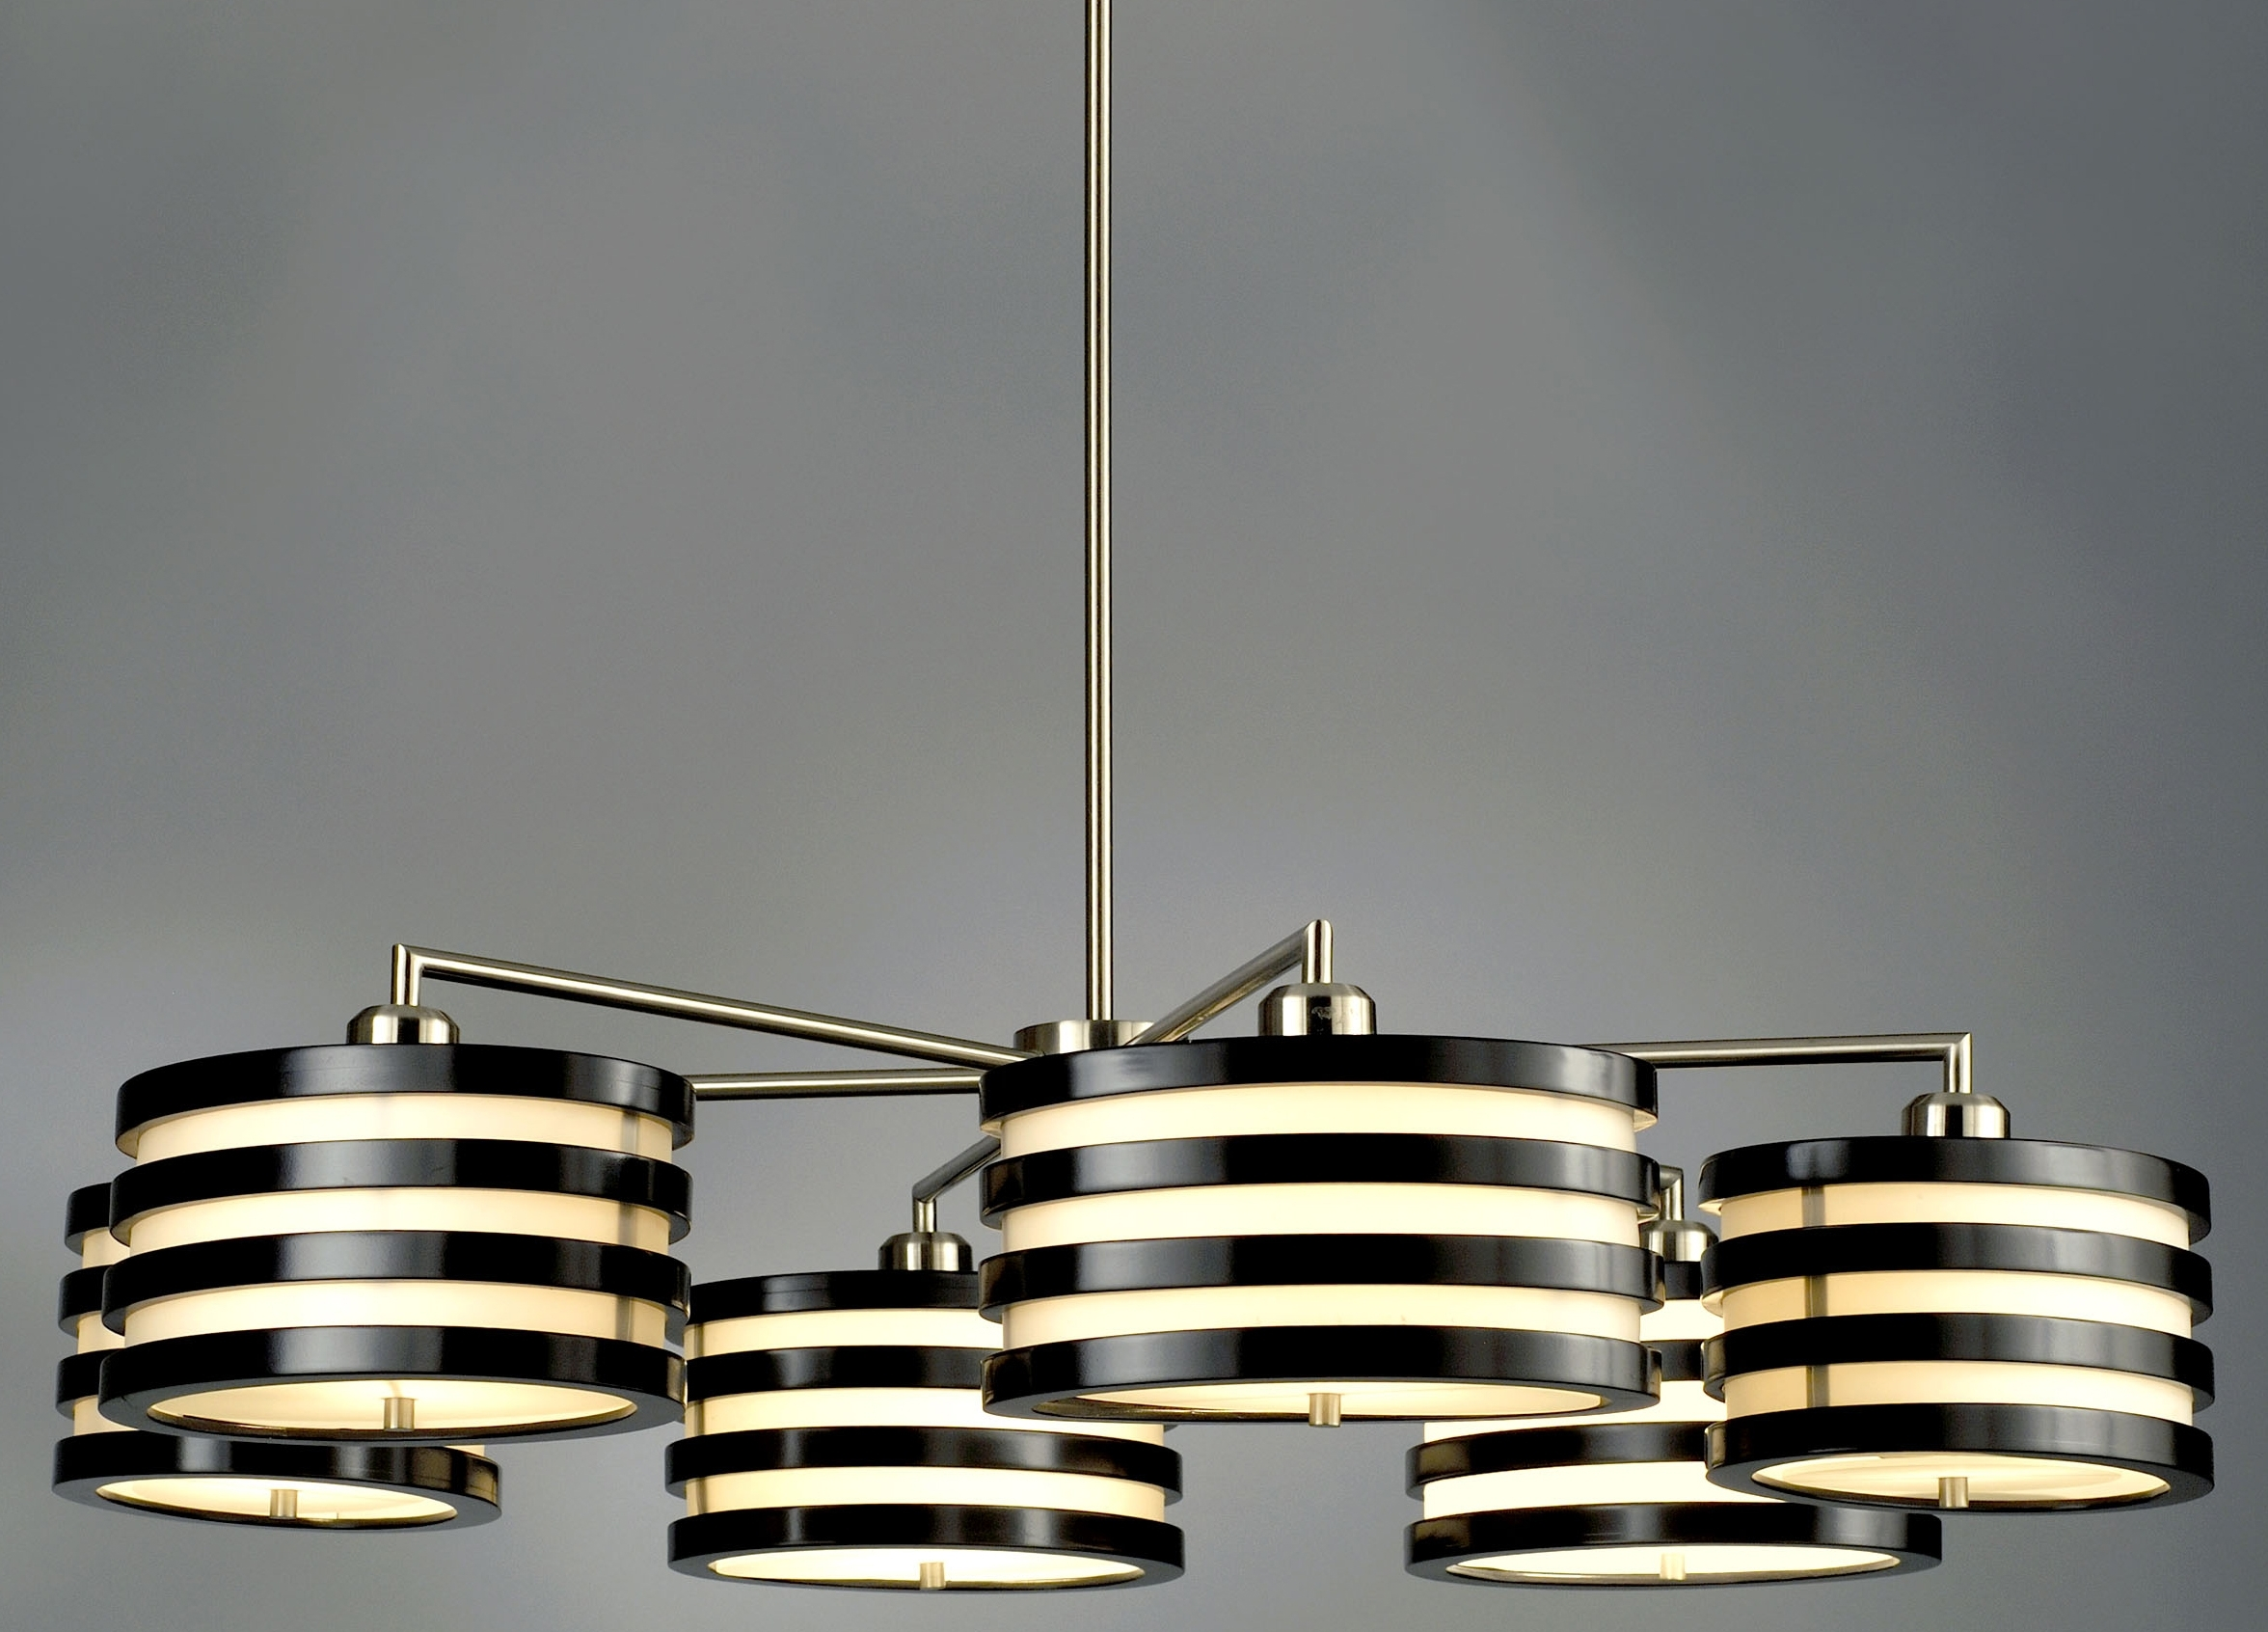 Recent Contemporary Modern Chandelier For Home Decor + Home Lighting Blog » Blog Archive » Nova Lighting Kobe (View 7 of 20)